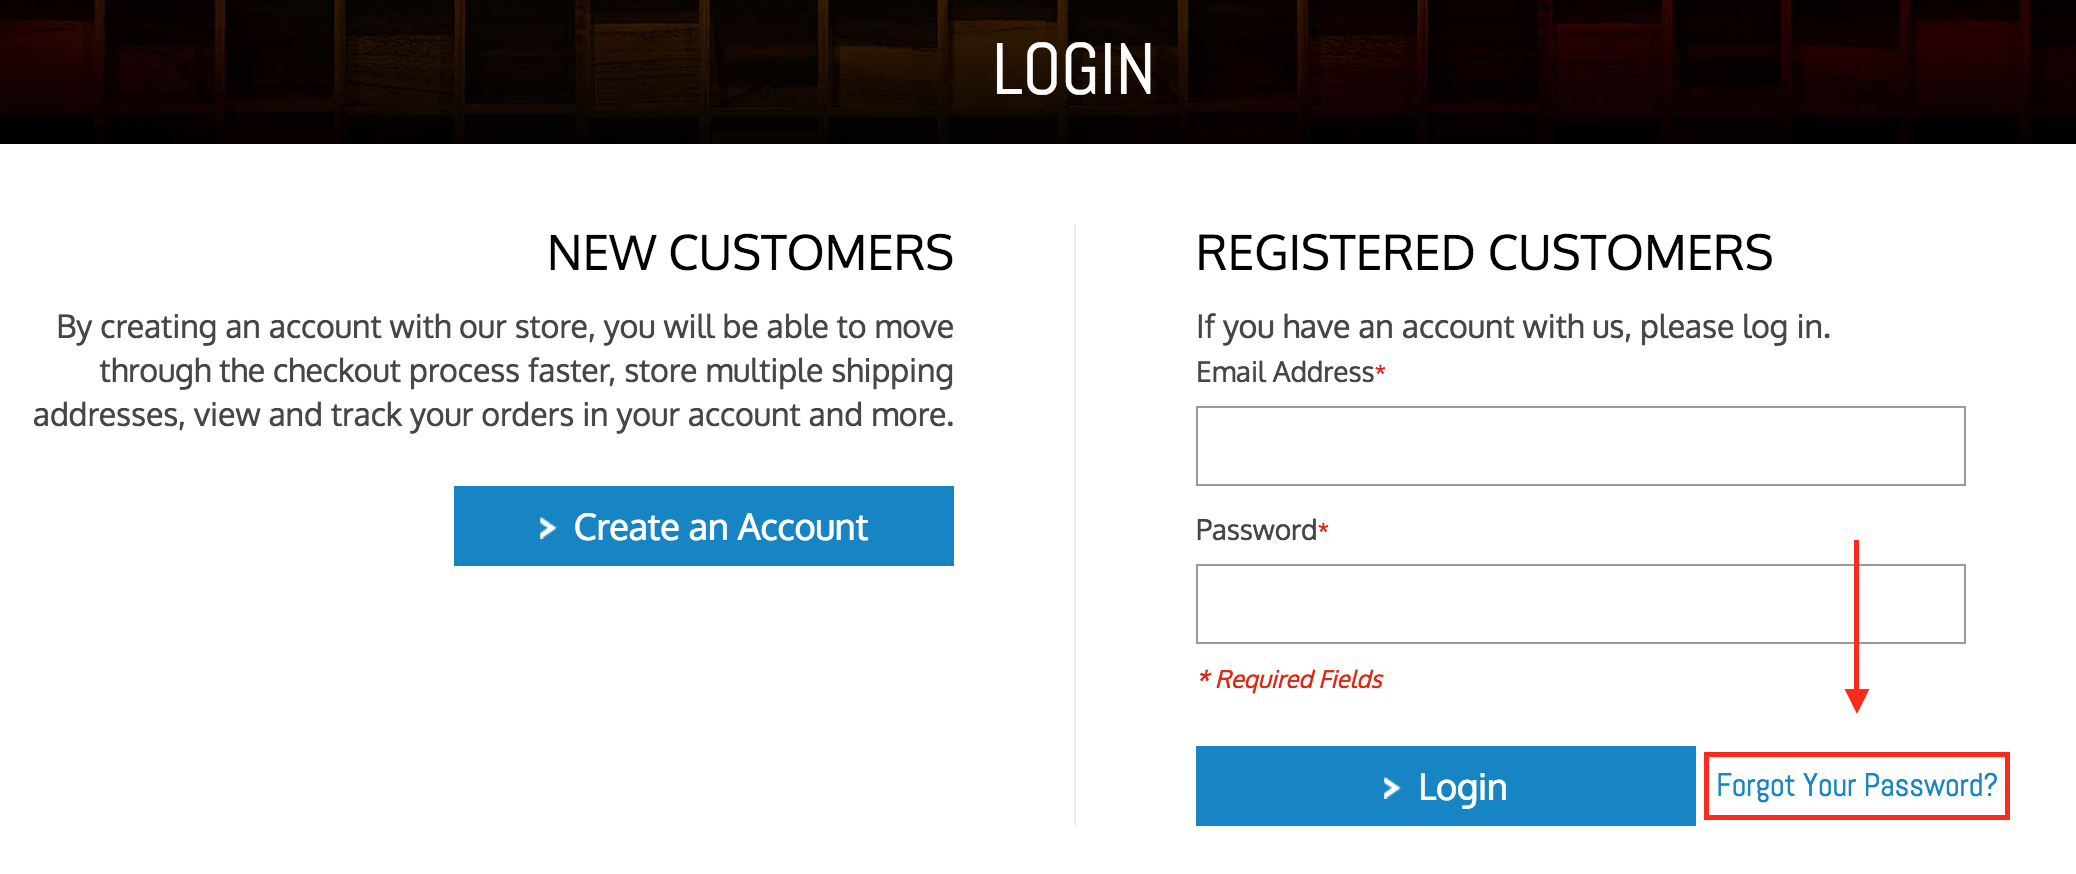 how to reset your password on learn link